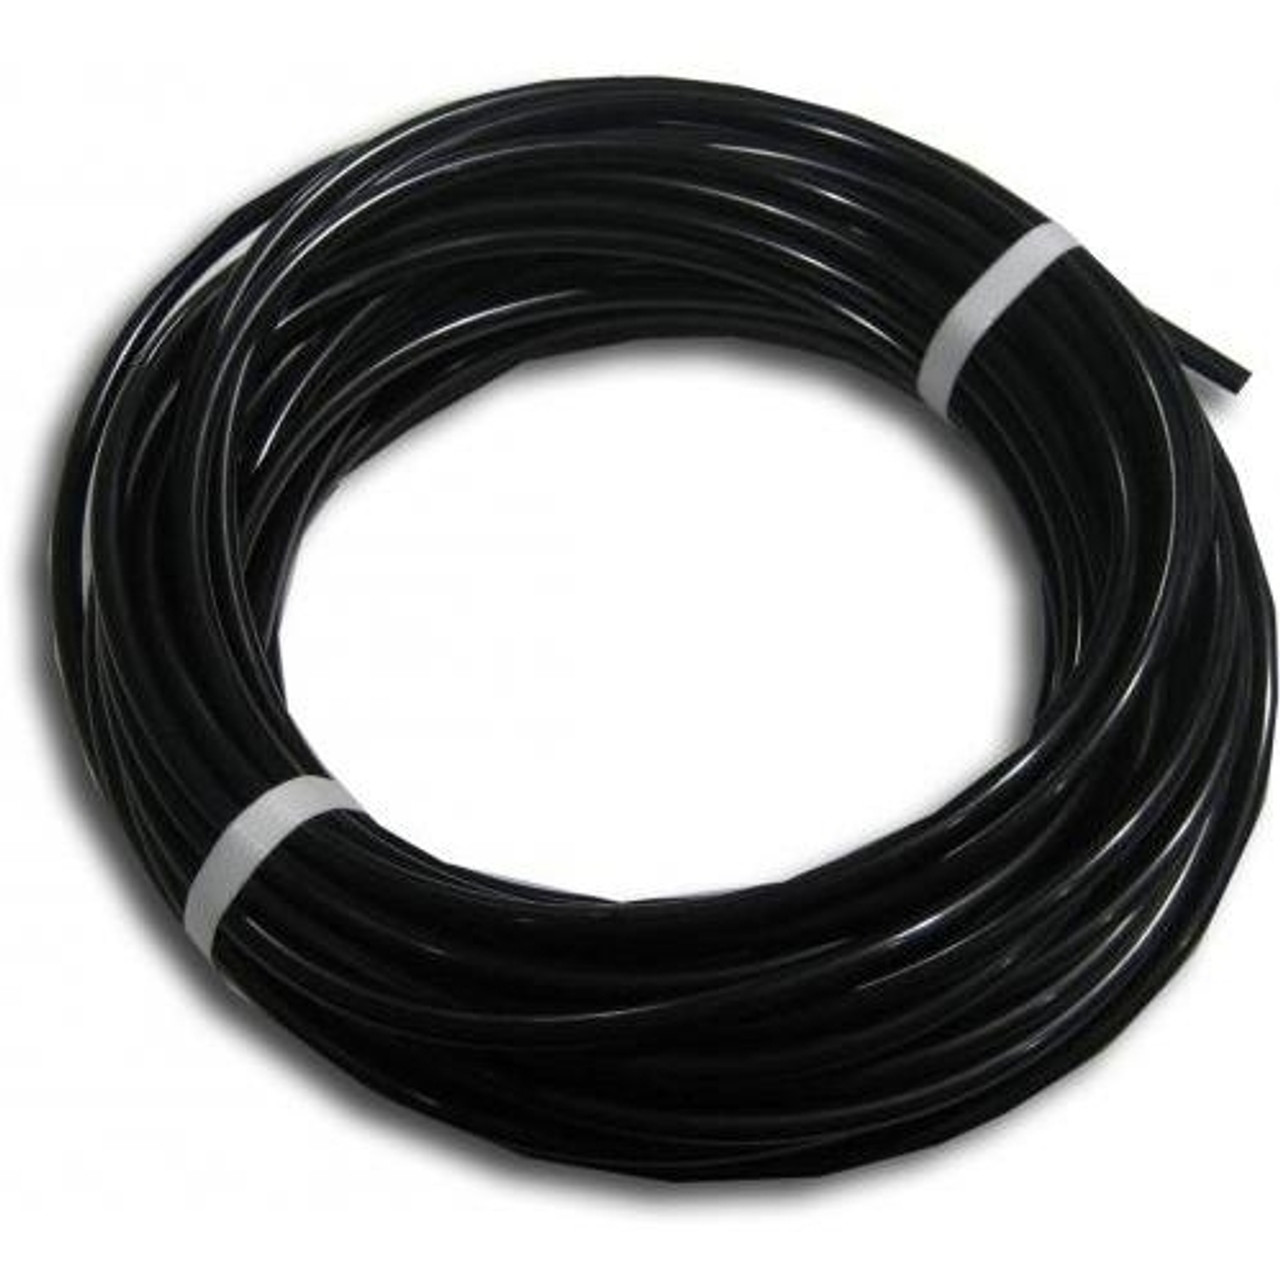 DownUnder 5/8 in. Aeration Tubing (100 ft. Boxed)